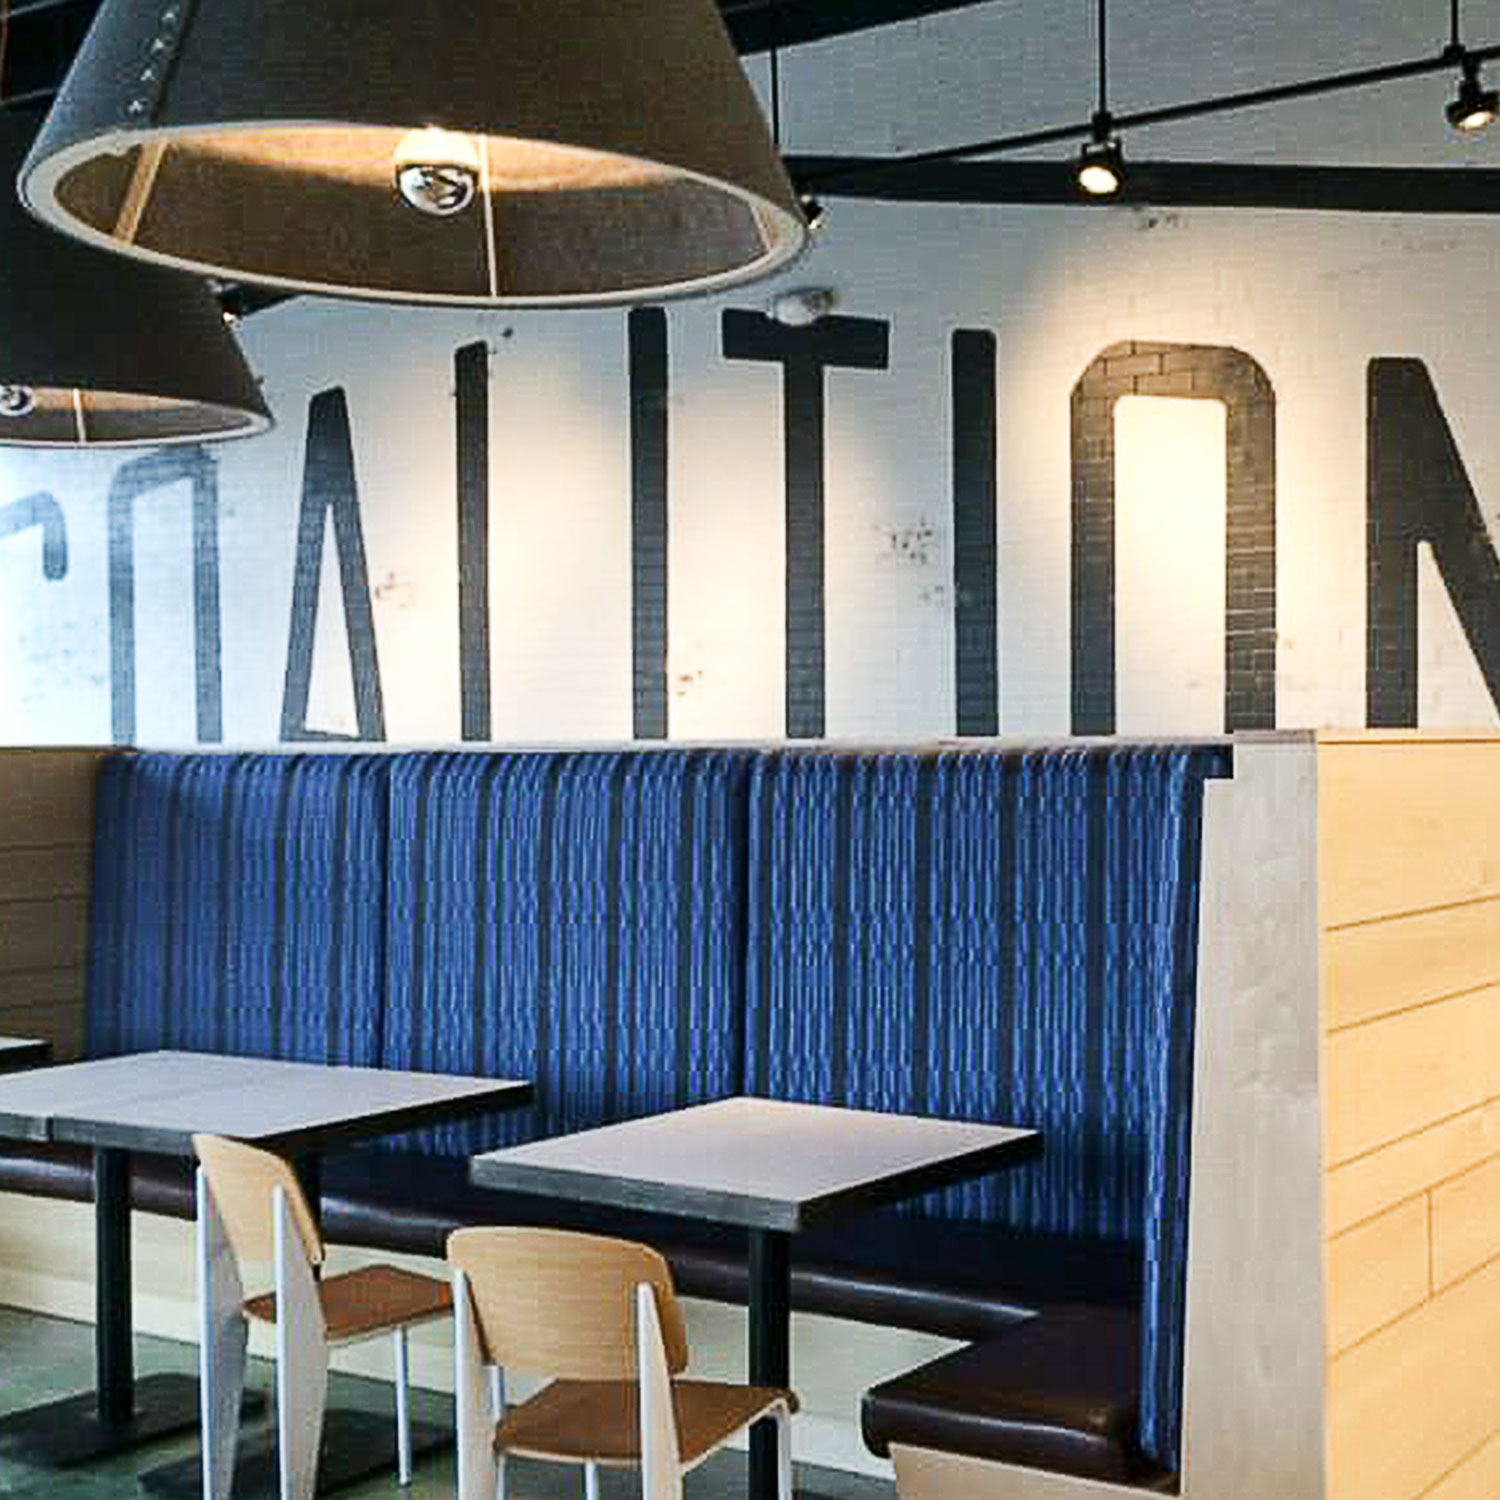 Branding a fast-casual restaurant